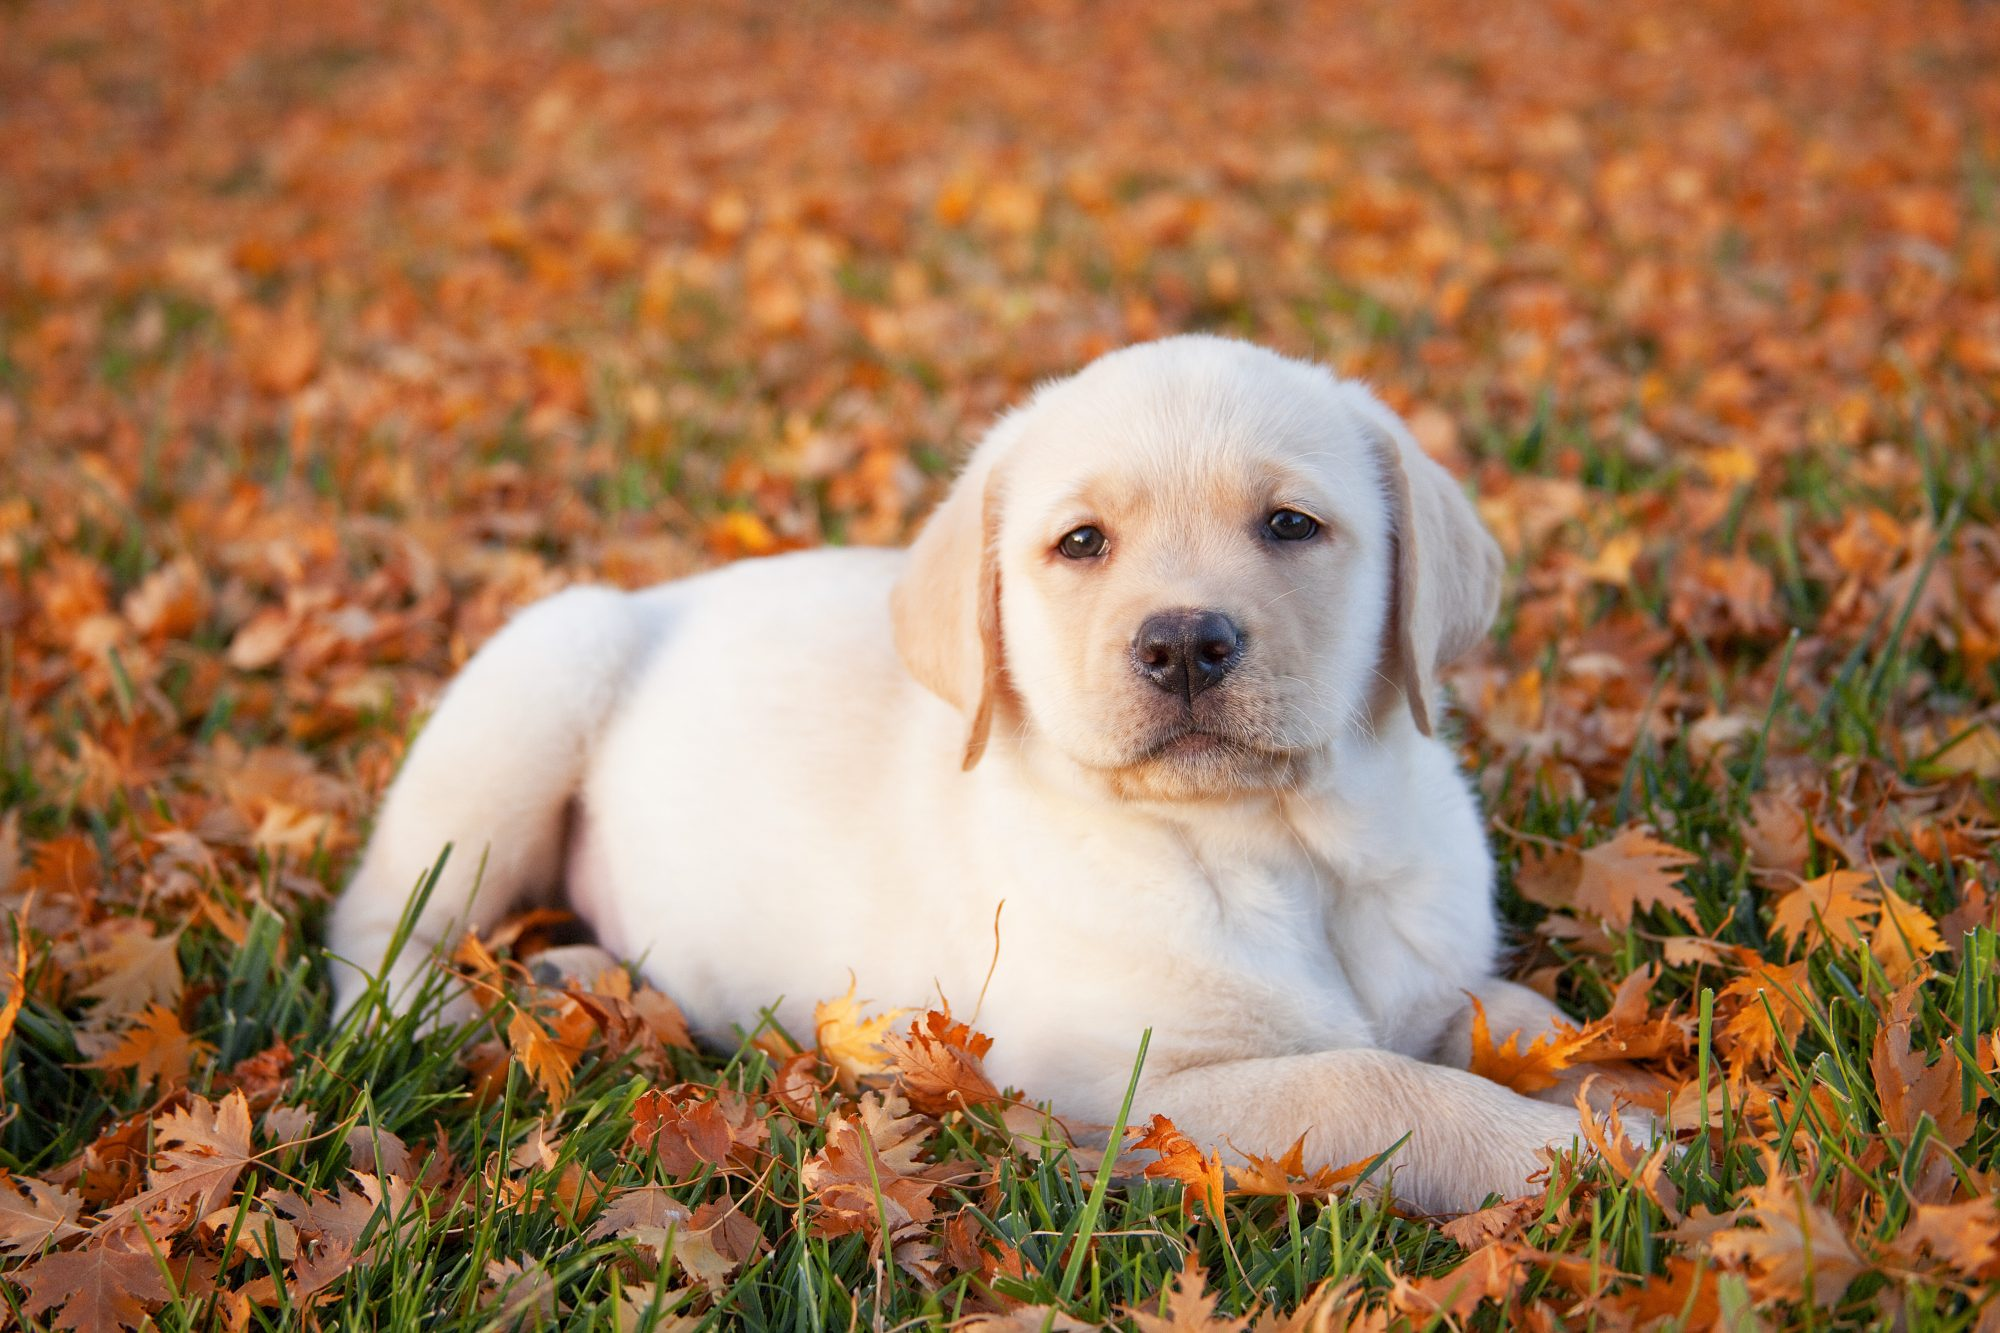 Golden Retriever puppy in fall leaves